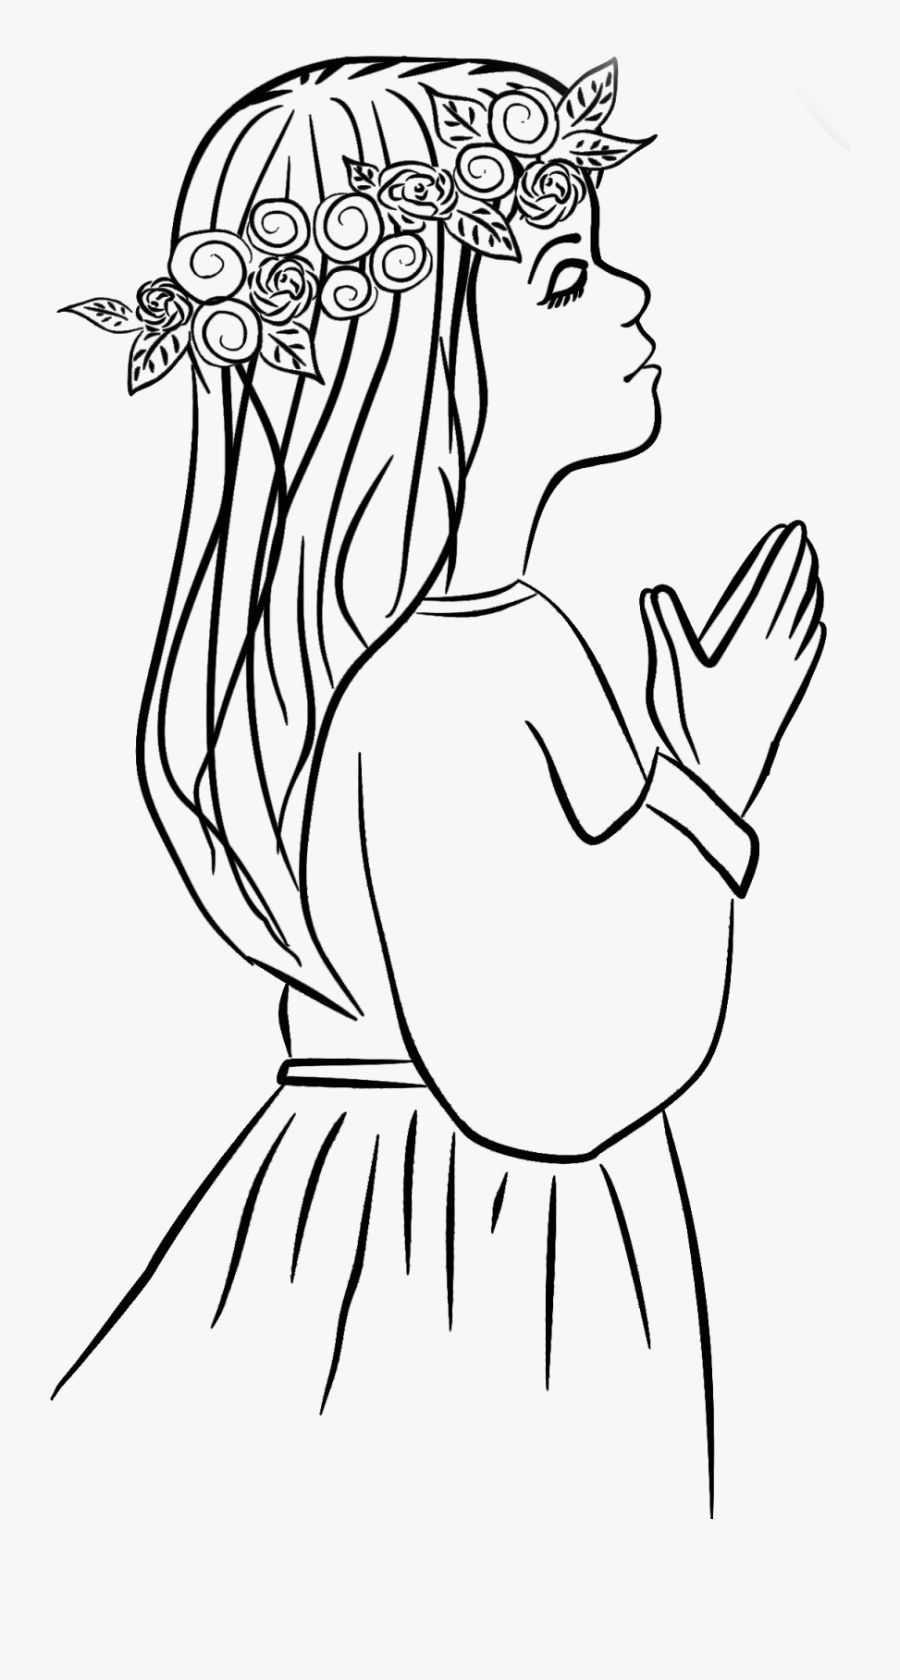 Pin By Sjannie On Witte Donderdag Goede Vrijdag Coloring Pages Drawings Pattern Coloring Pages